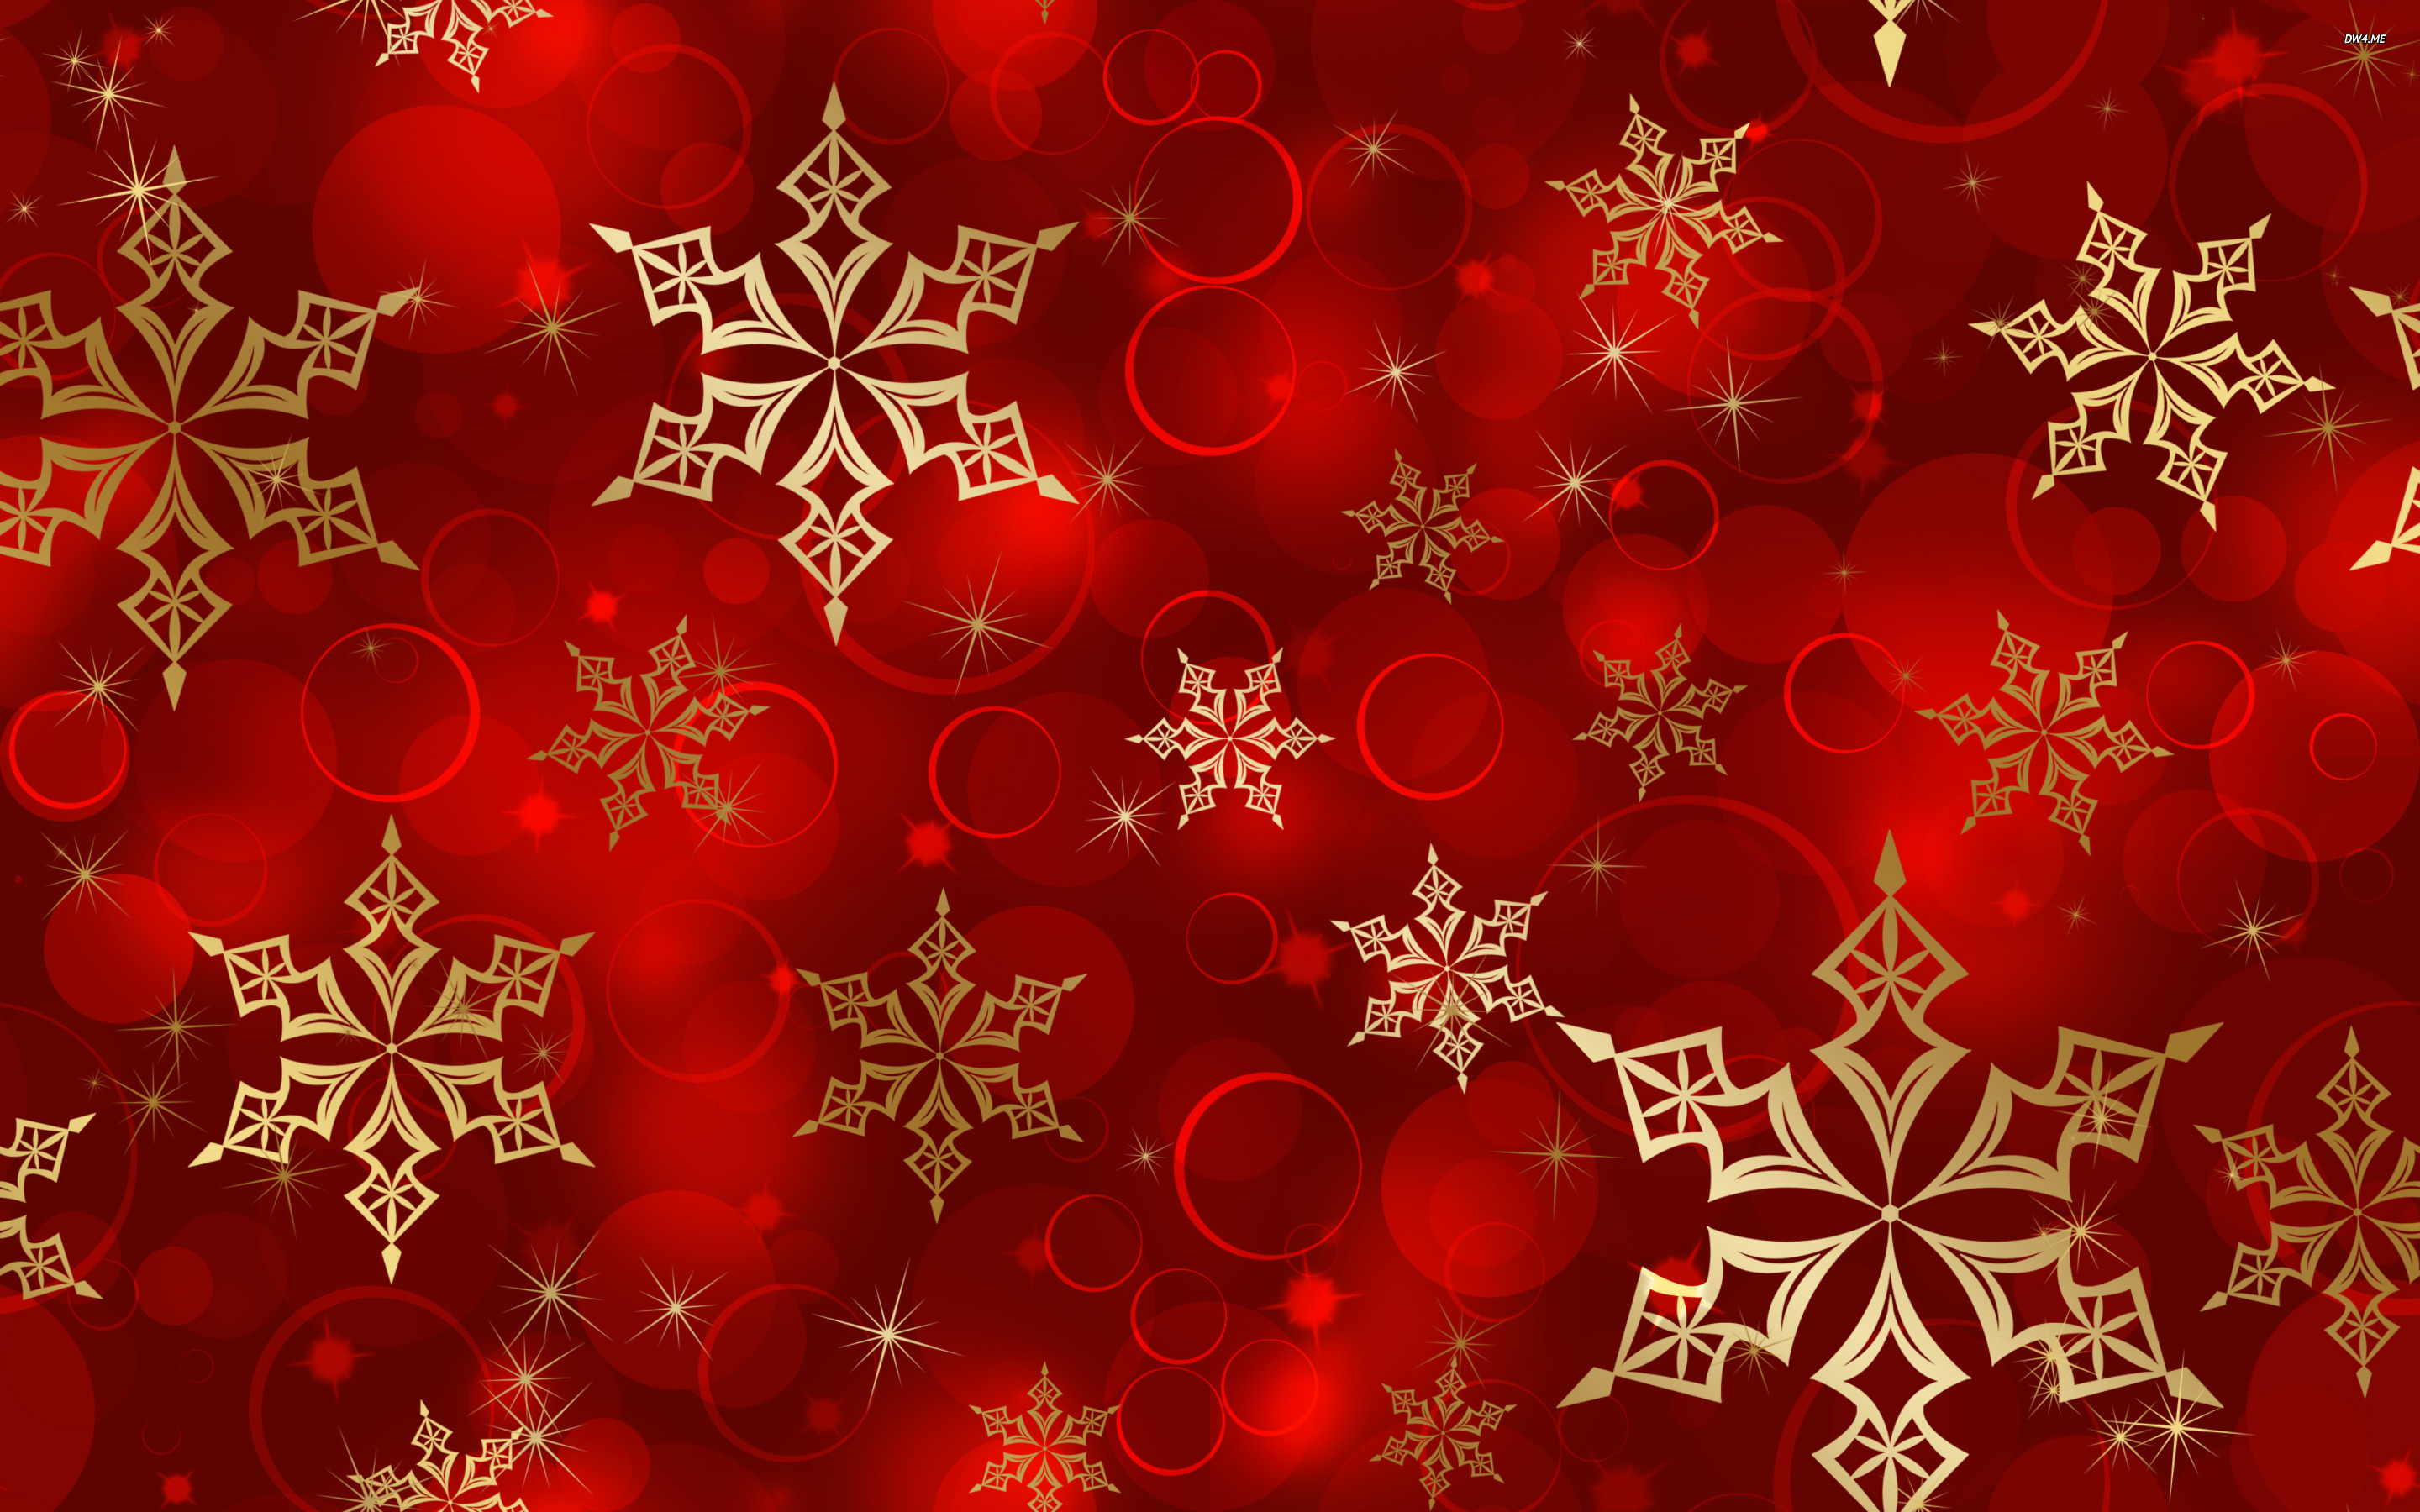 Free Illustration Background Christmas Red Gold: [40+] Red And Gold Wallpaper On WallpaperSafari